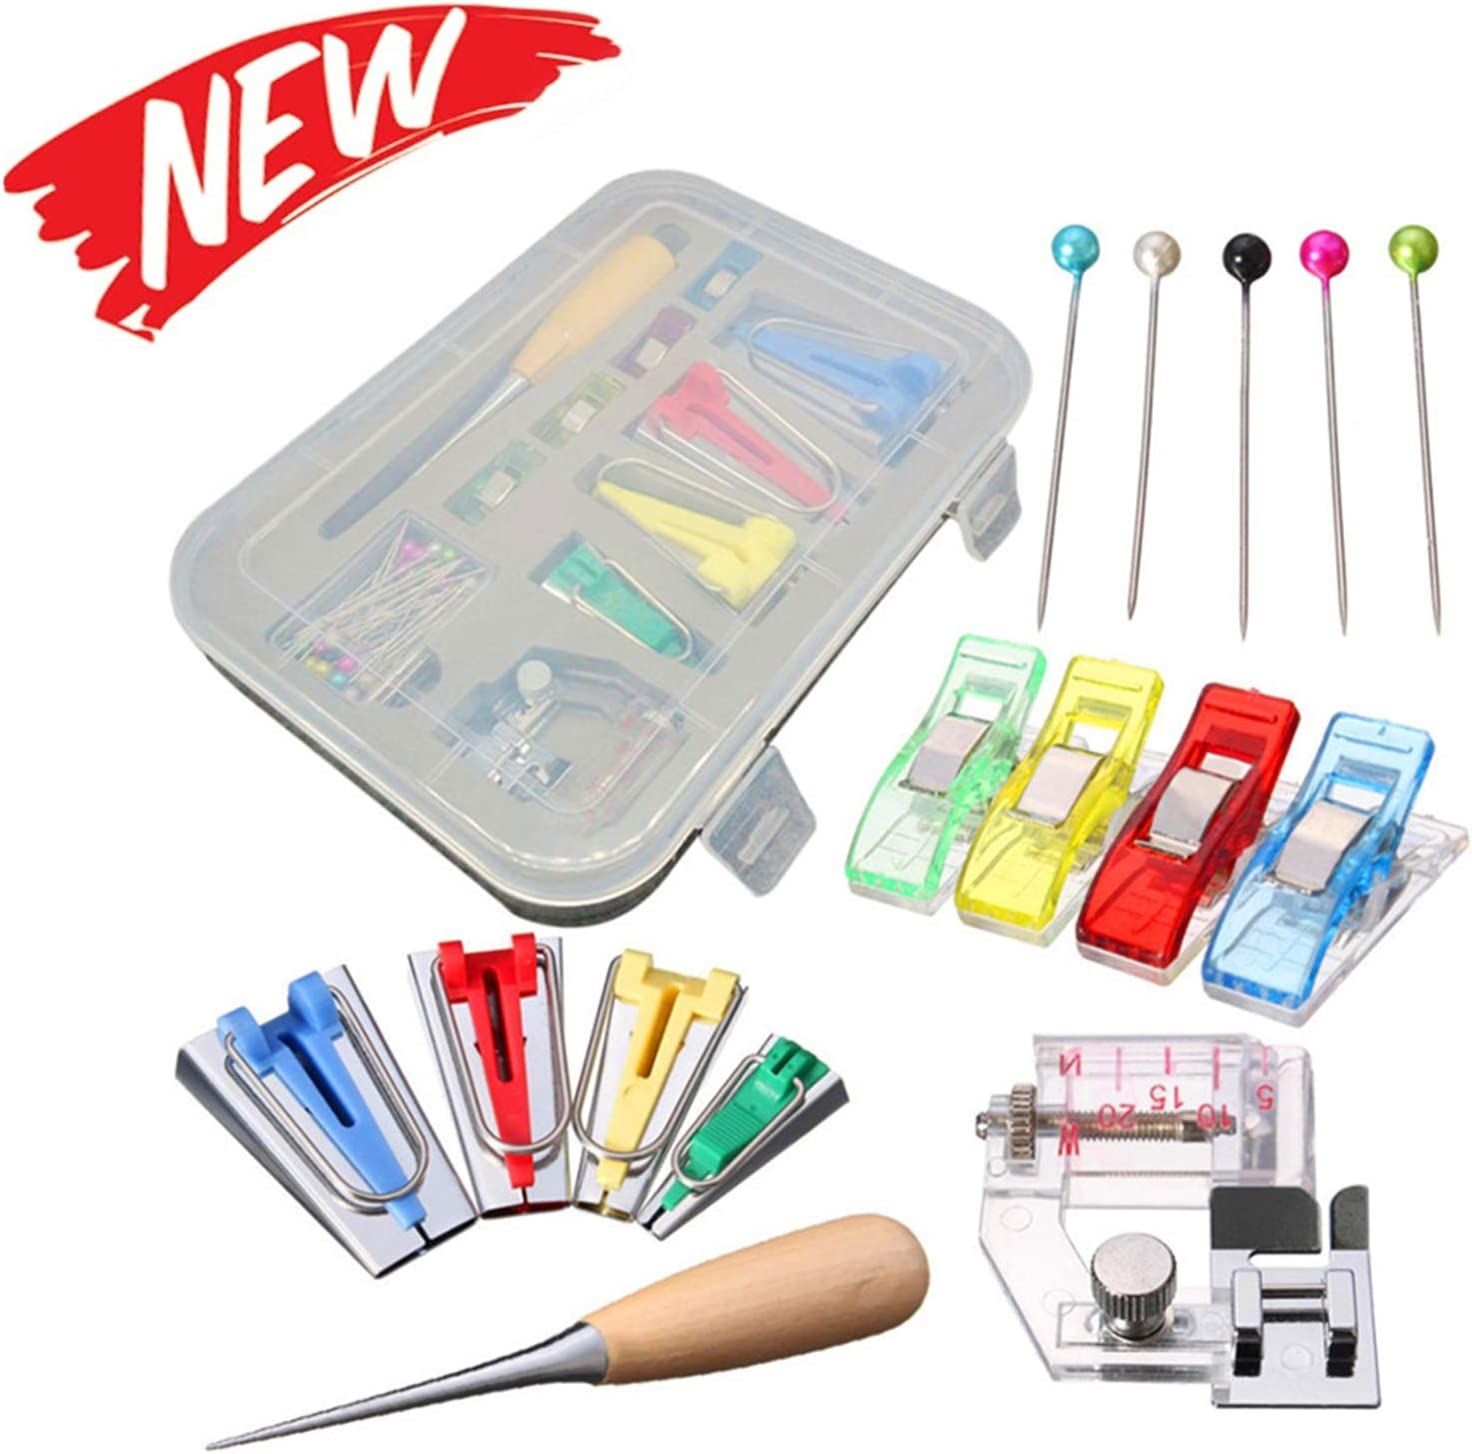 Yuema Bias Tape Maker Kits 4 Sizes 6MM 12MM 18MM 25MM Binder Foot Craft Clips for DIY Sewing Quilting Time Consuming 5pcs